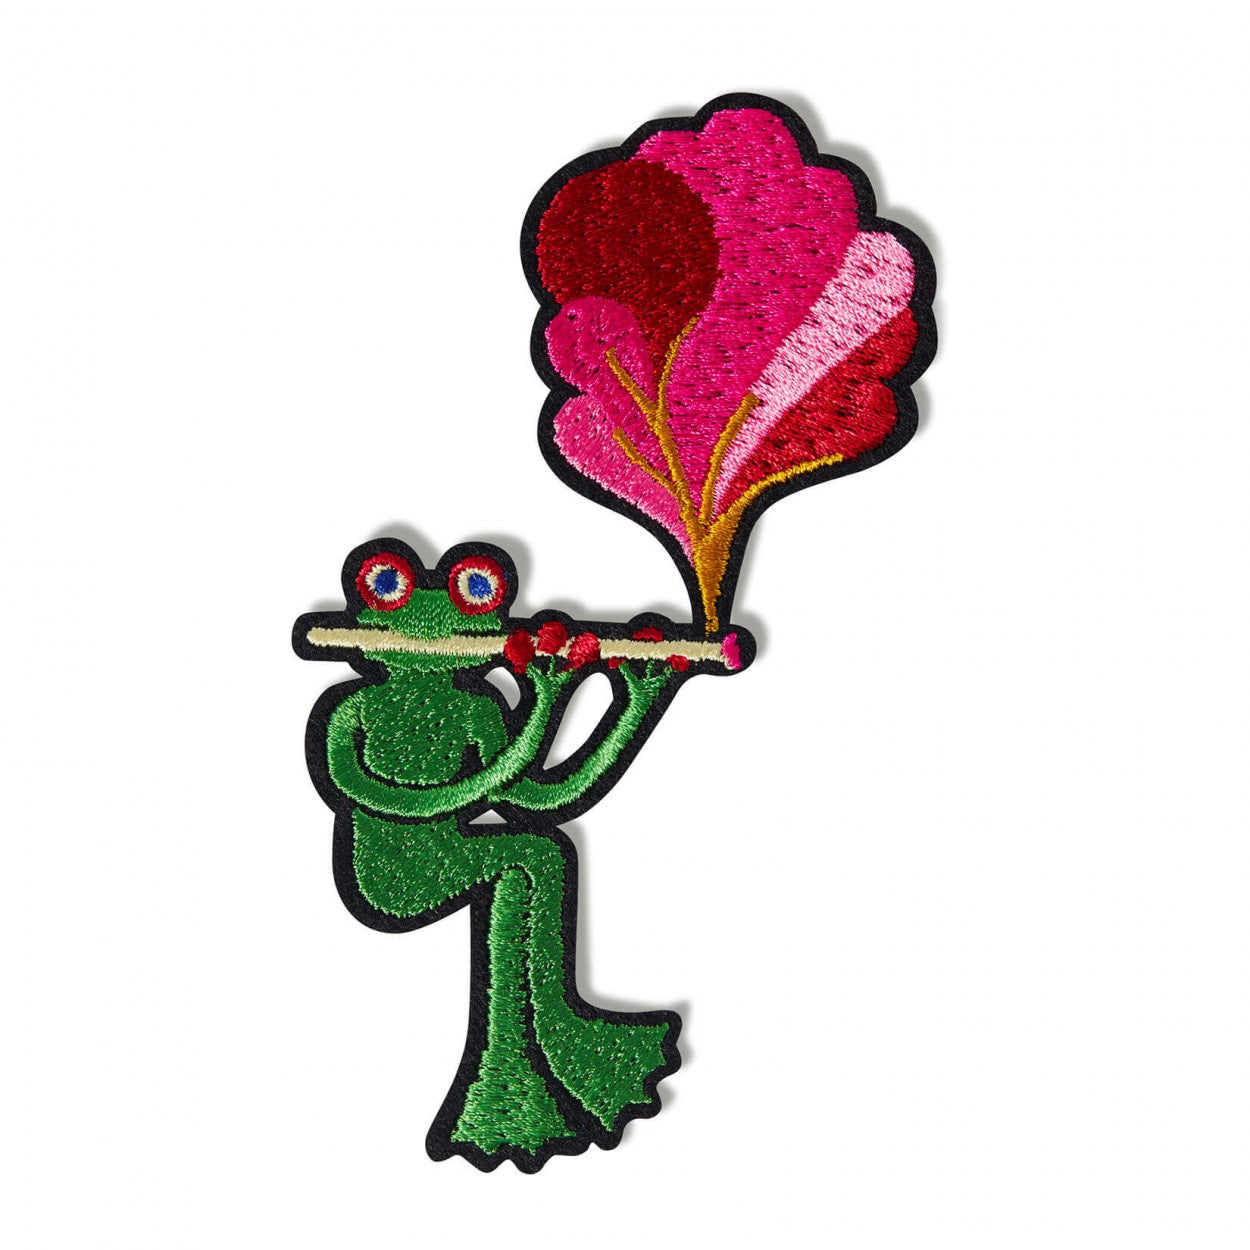 Macon & Lesquoy Hand Embroidered Patch Flute Toad